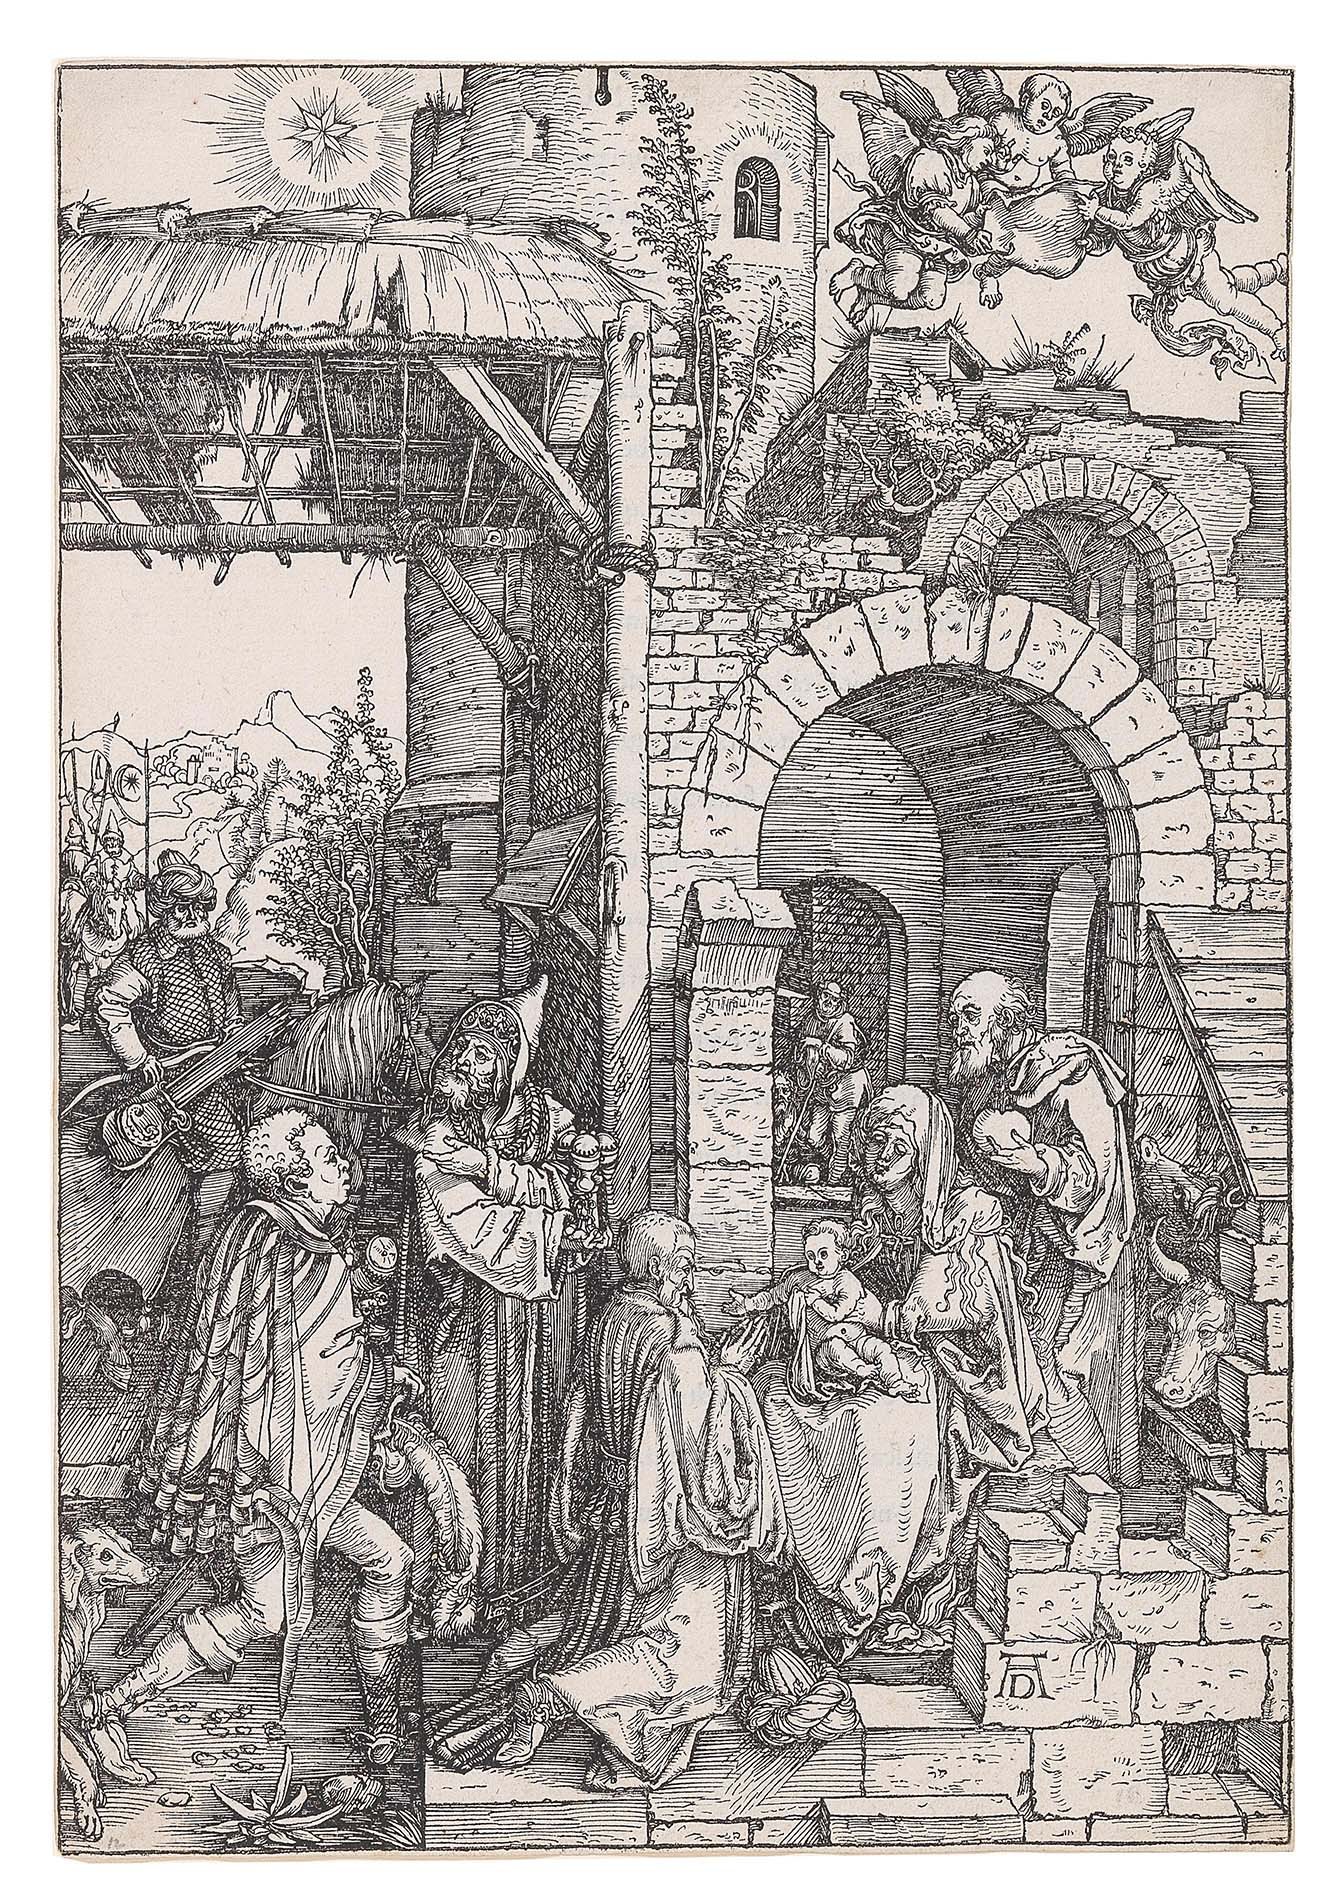 """Albrecht Dürer, (Nuremberg 1471–1528) The Adoration of the Magi, c. 1503, plate 12 from """"The Life of the Virgin"""", monogrammed AD, woodcut on laid paper with watermark """"tower with crown on top"""" (Meder 259), 30,2 x 21 cm, Starting bid €4,000"""